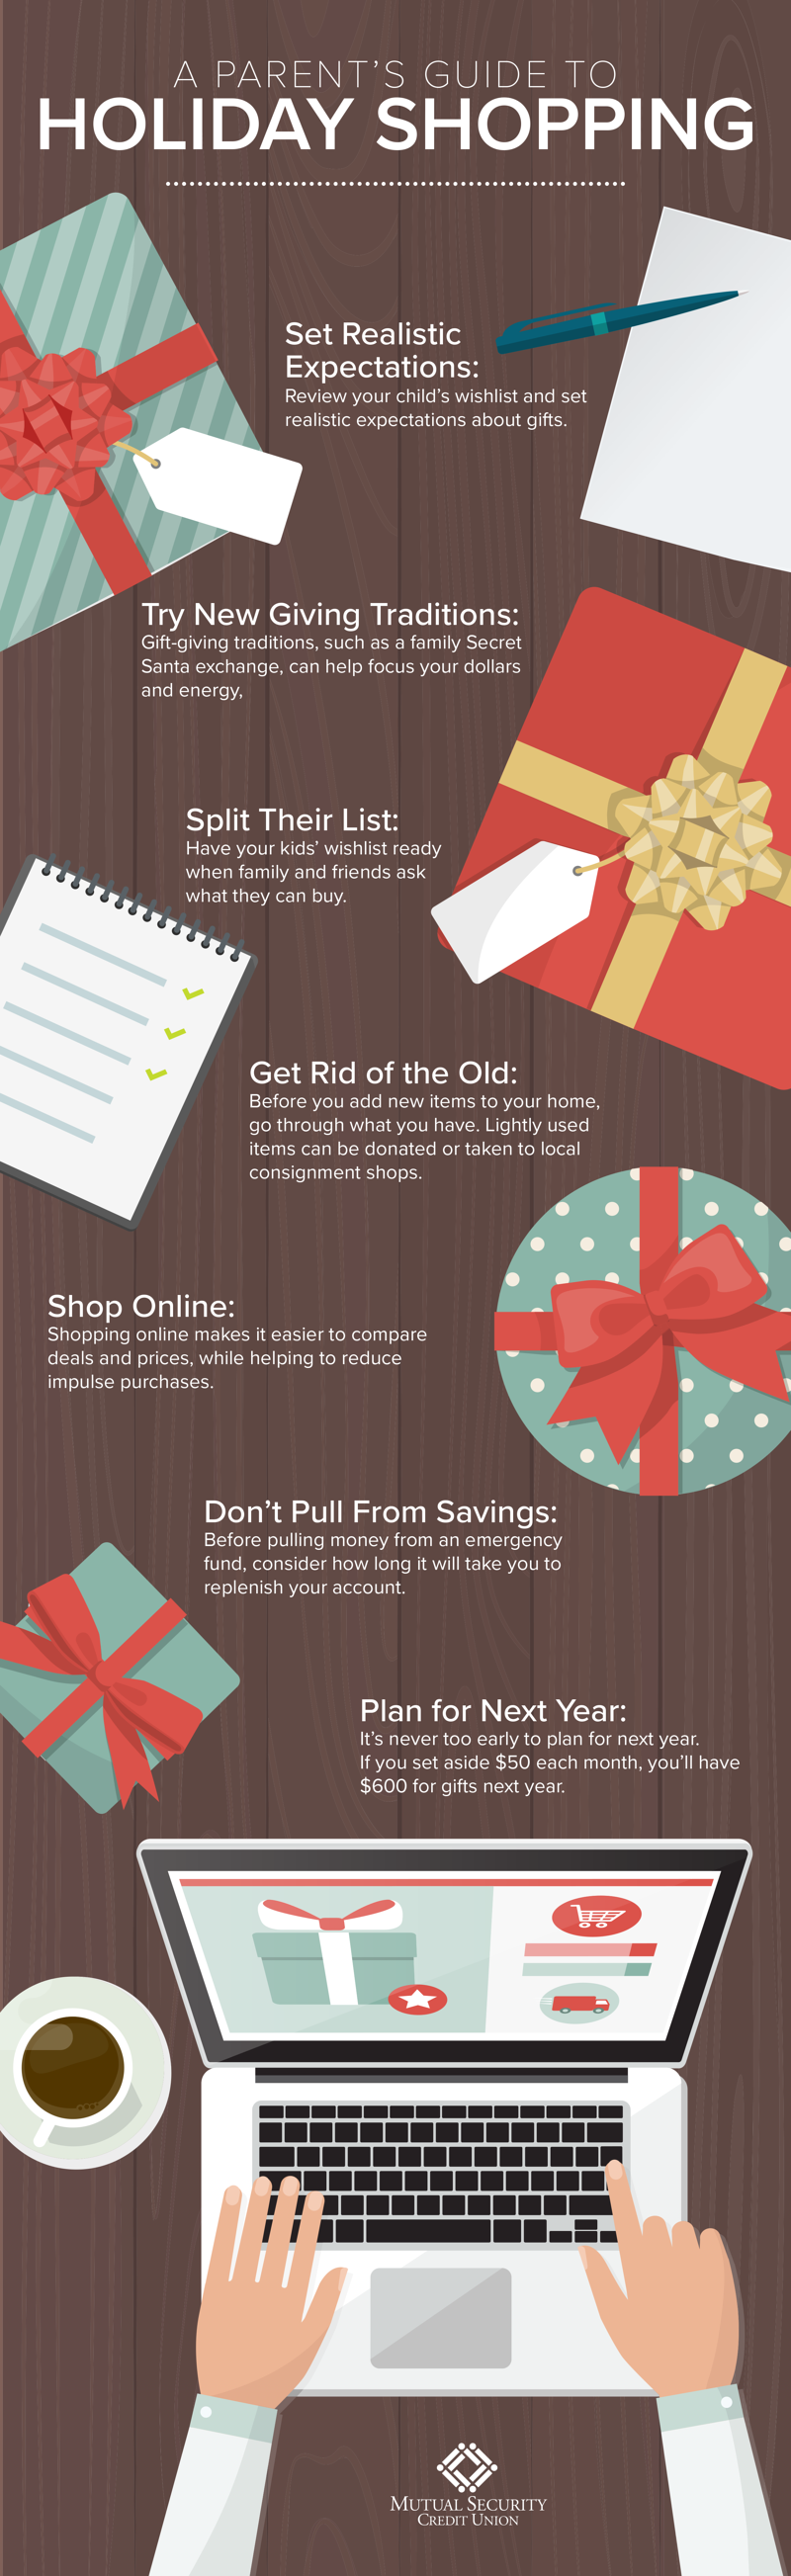 ParentsGuideHolidayShopping_Infographic.png